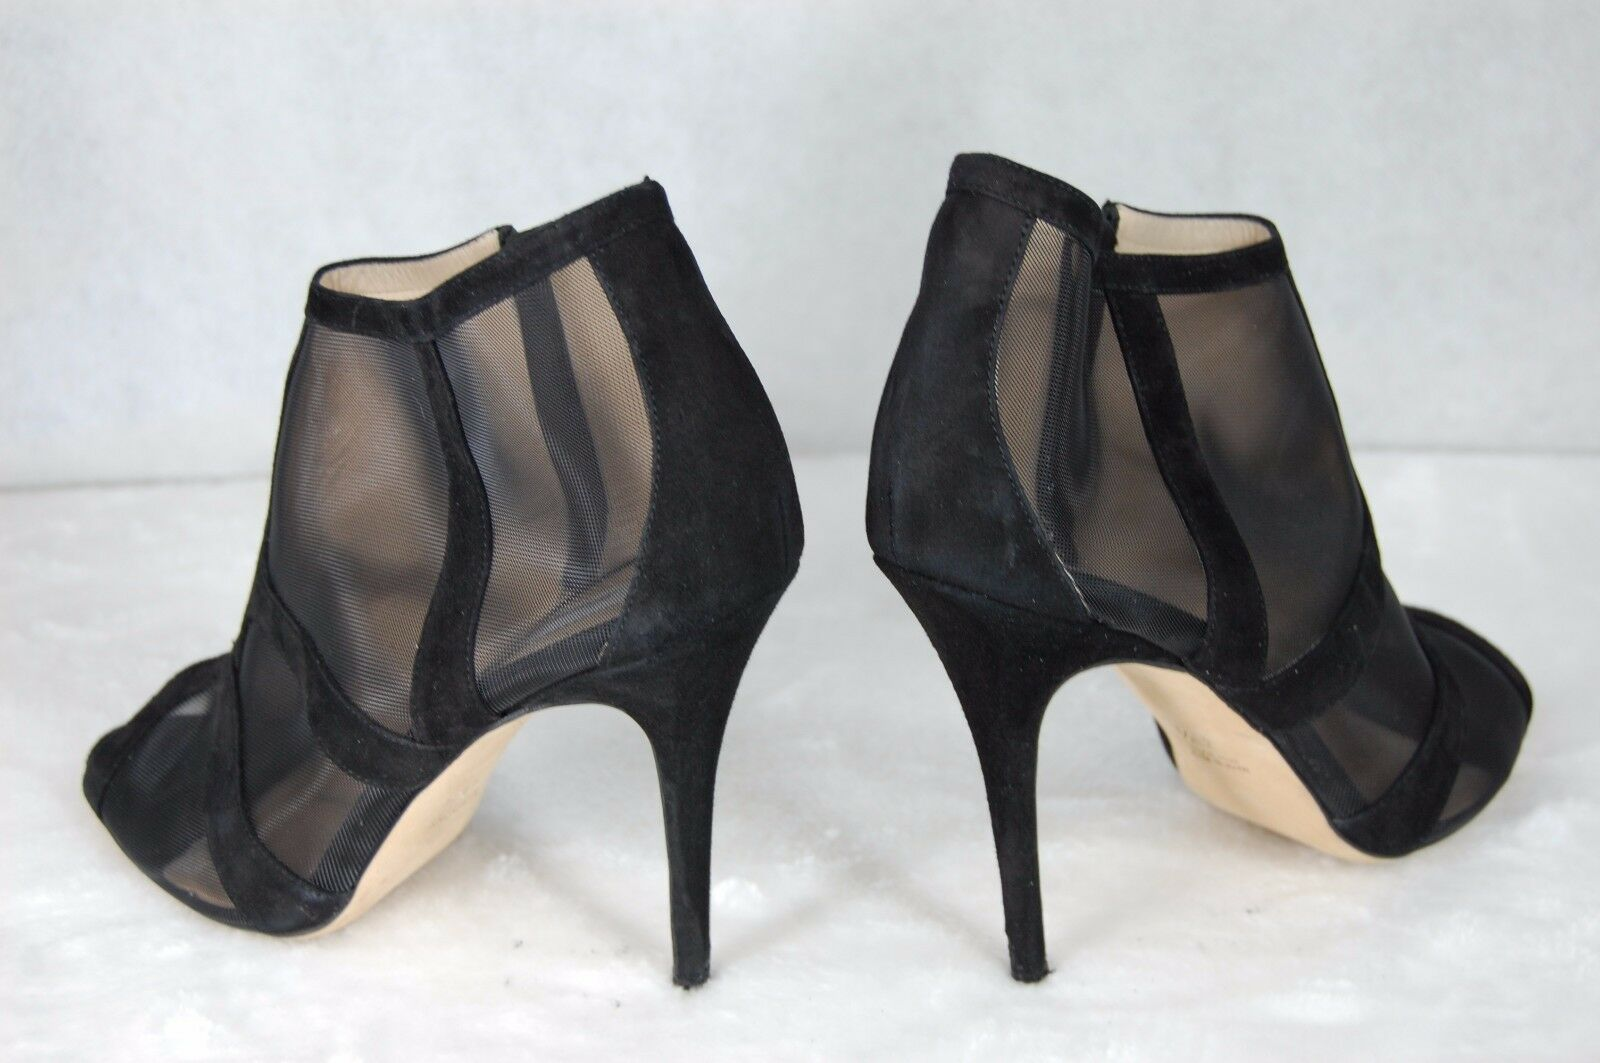 Monique Lhuillier MADE IN ITALY schwarz MESH& SUEDE ANKLE Stiefel EU 40.5 US 10